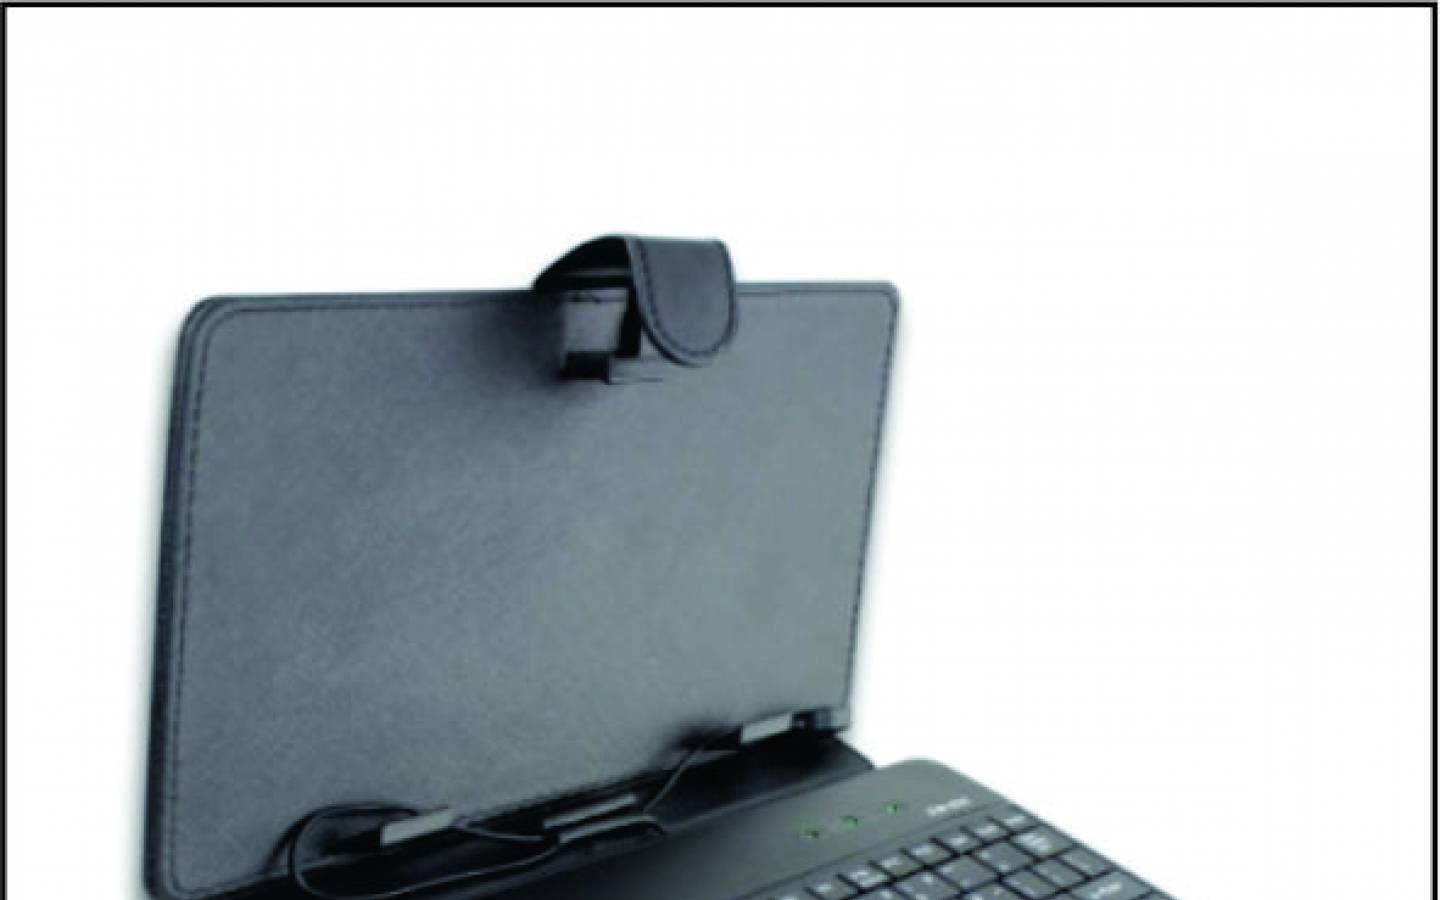 Funda tablet 9 con teclado X-POINT negro